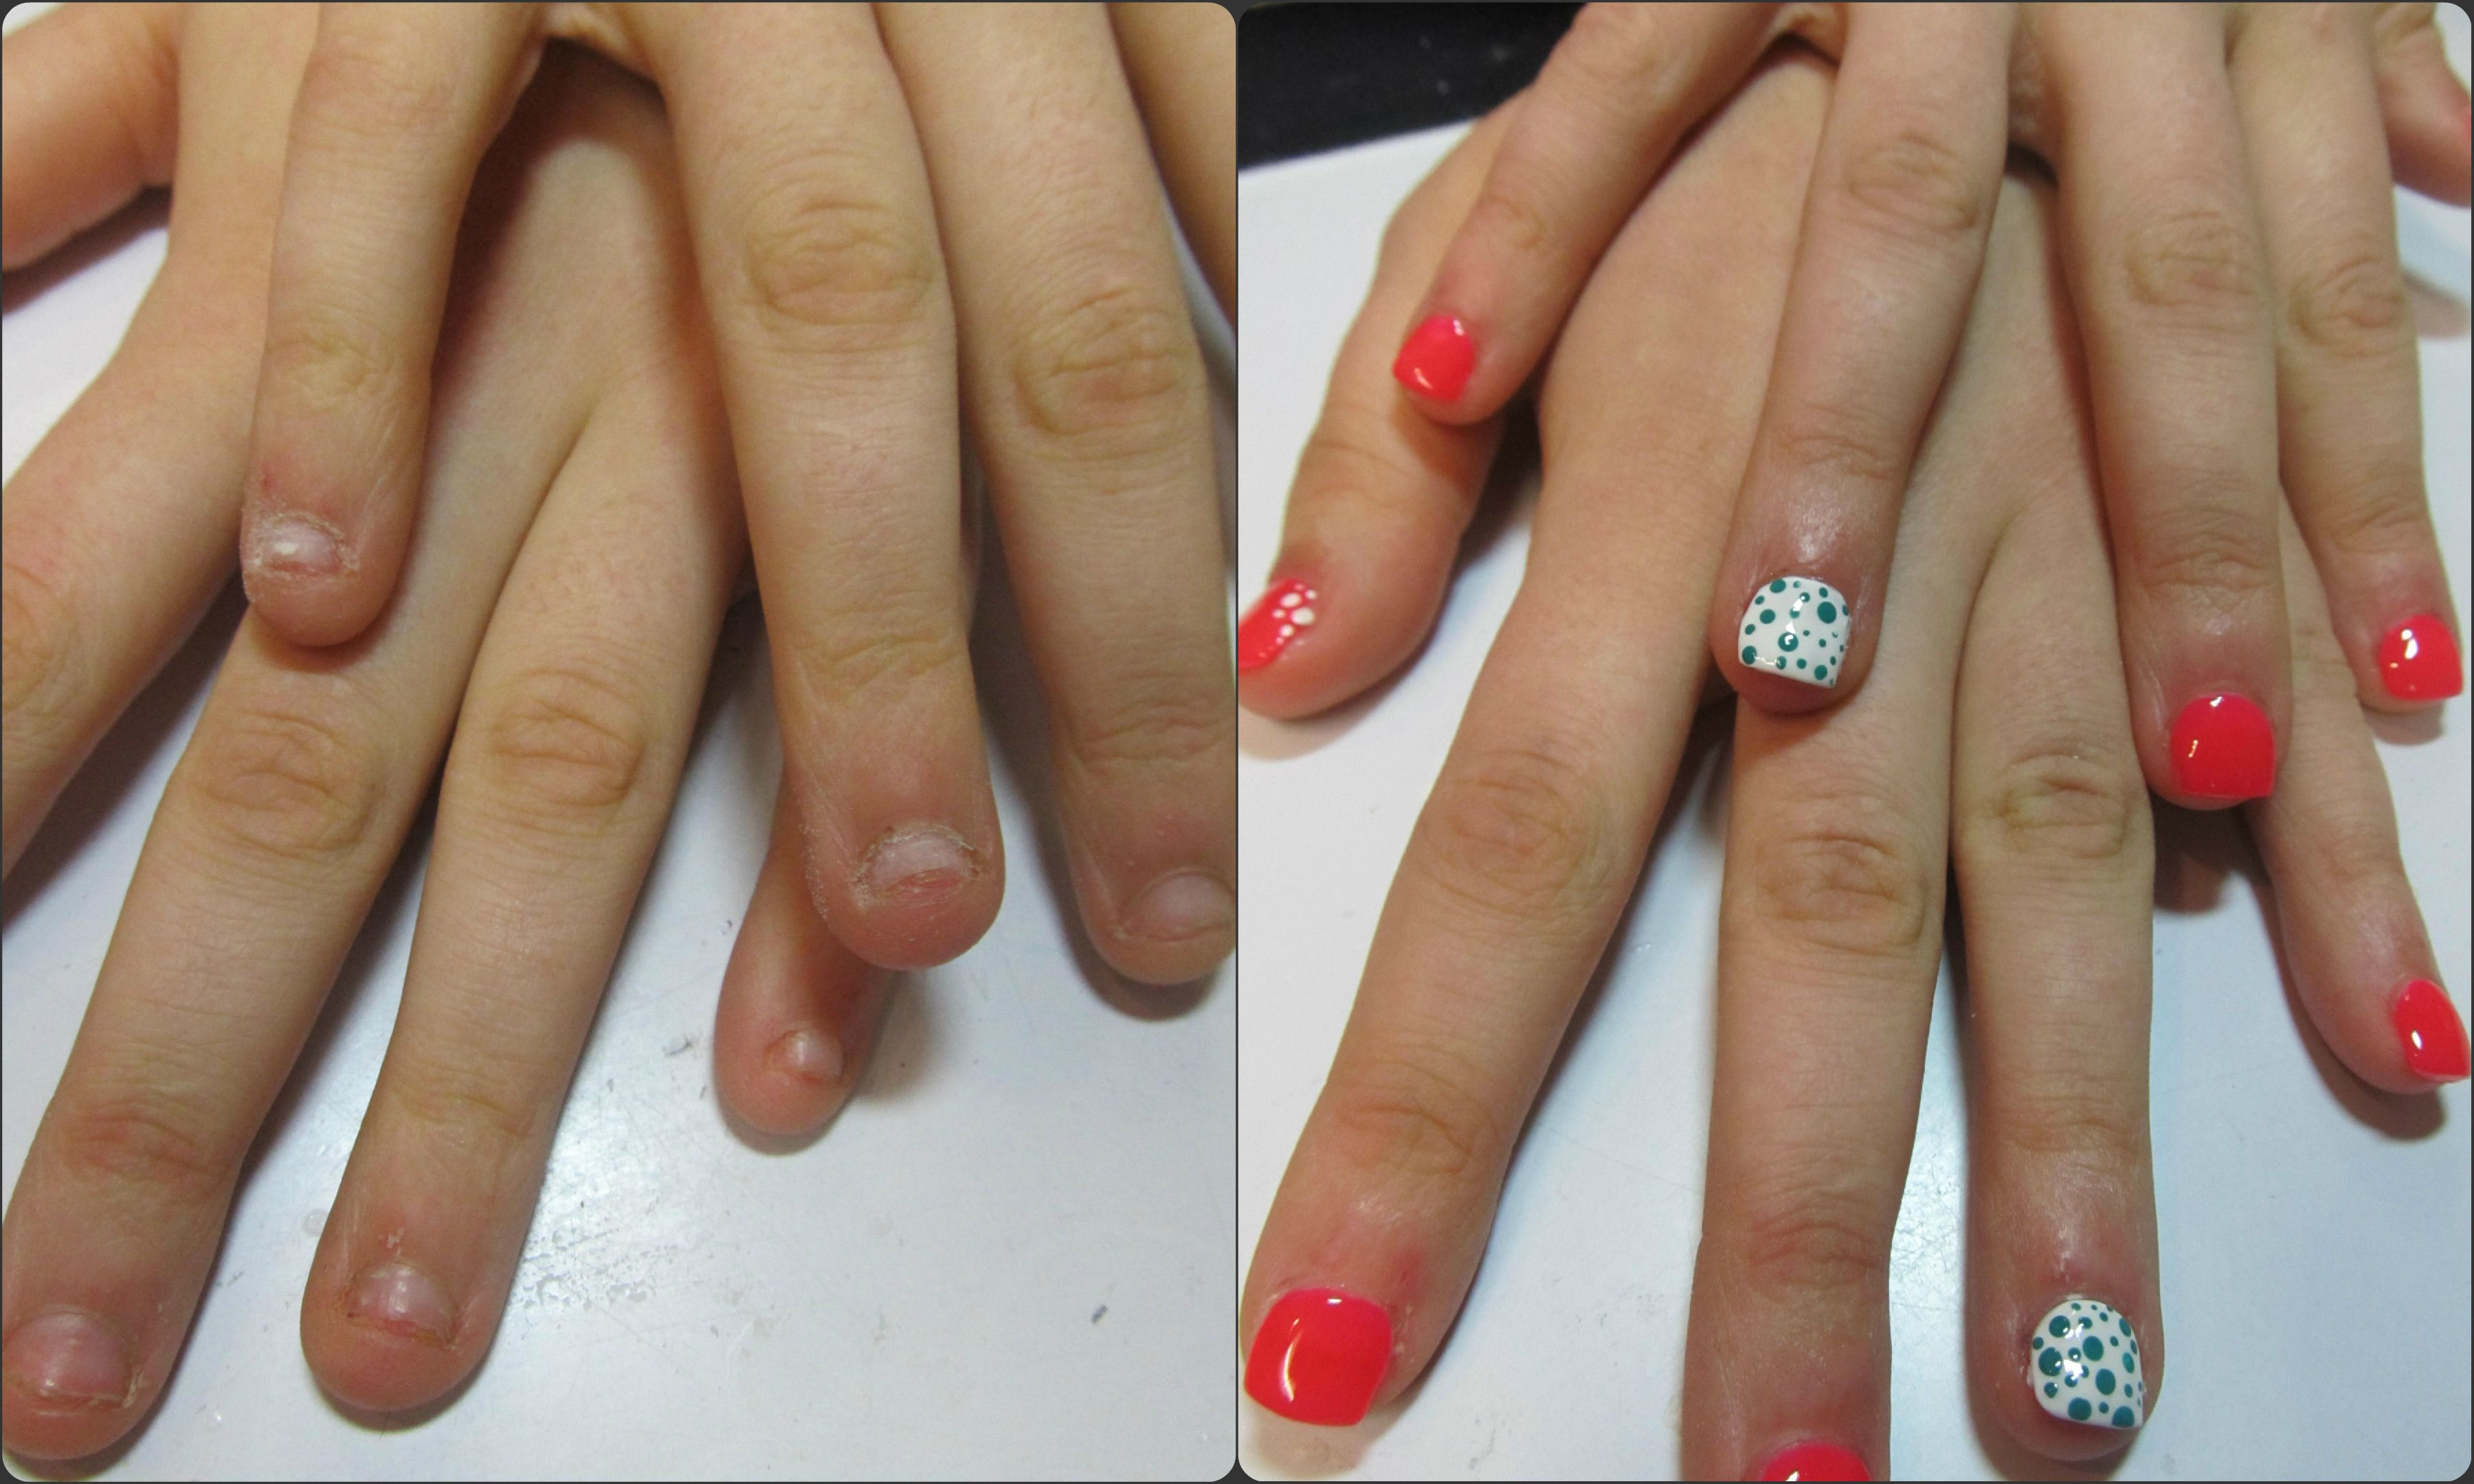 Short and bitten nails before and after lengthening with sculpted ...